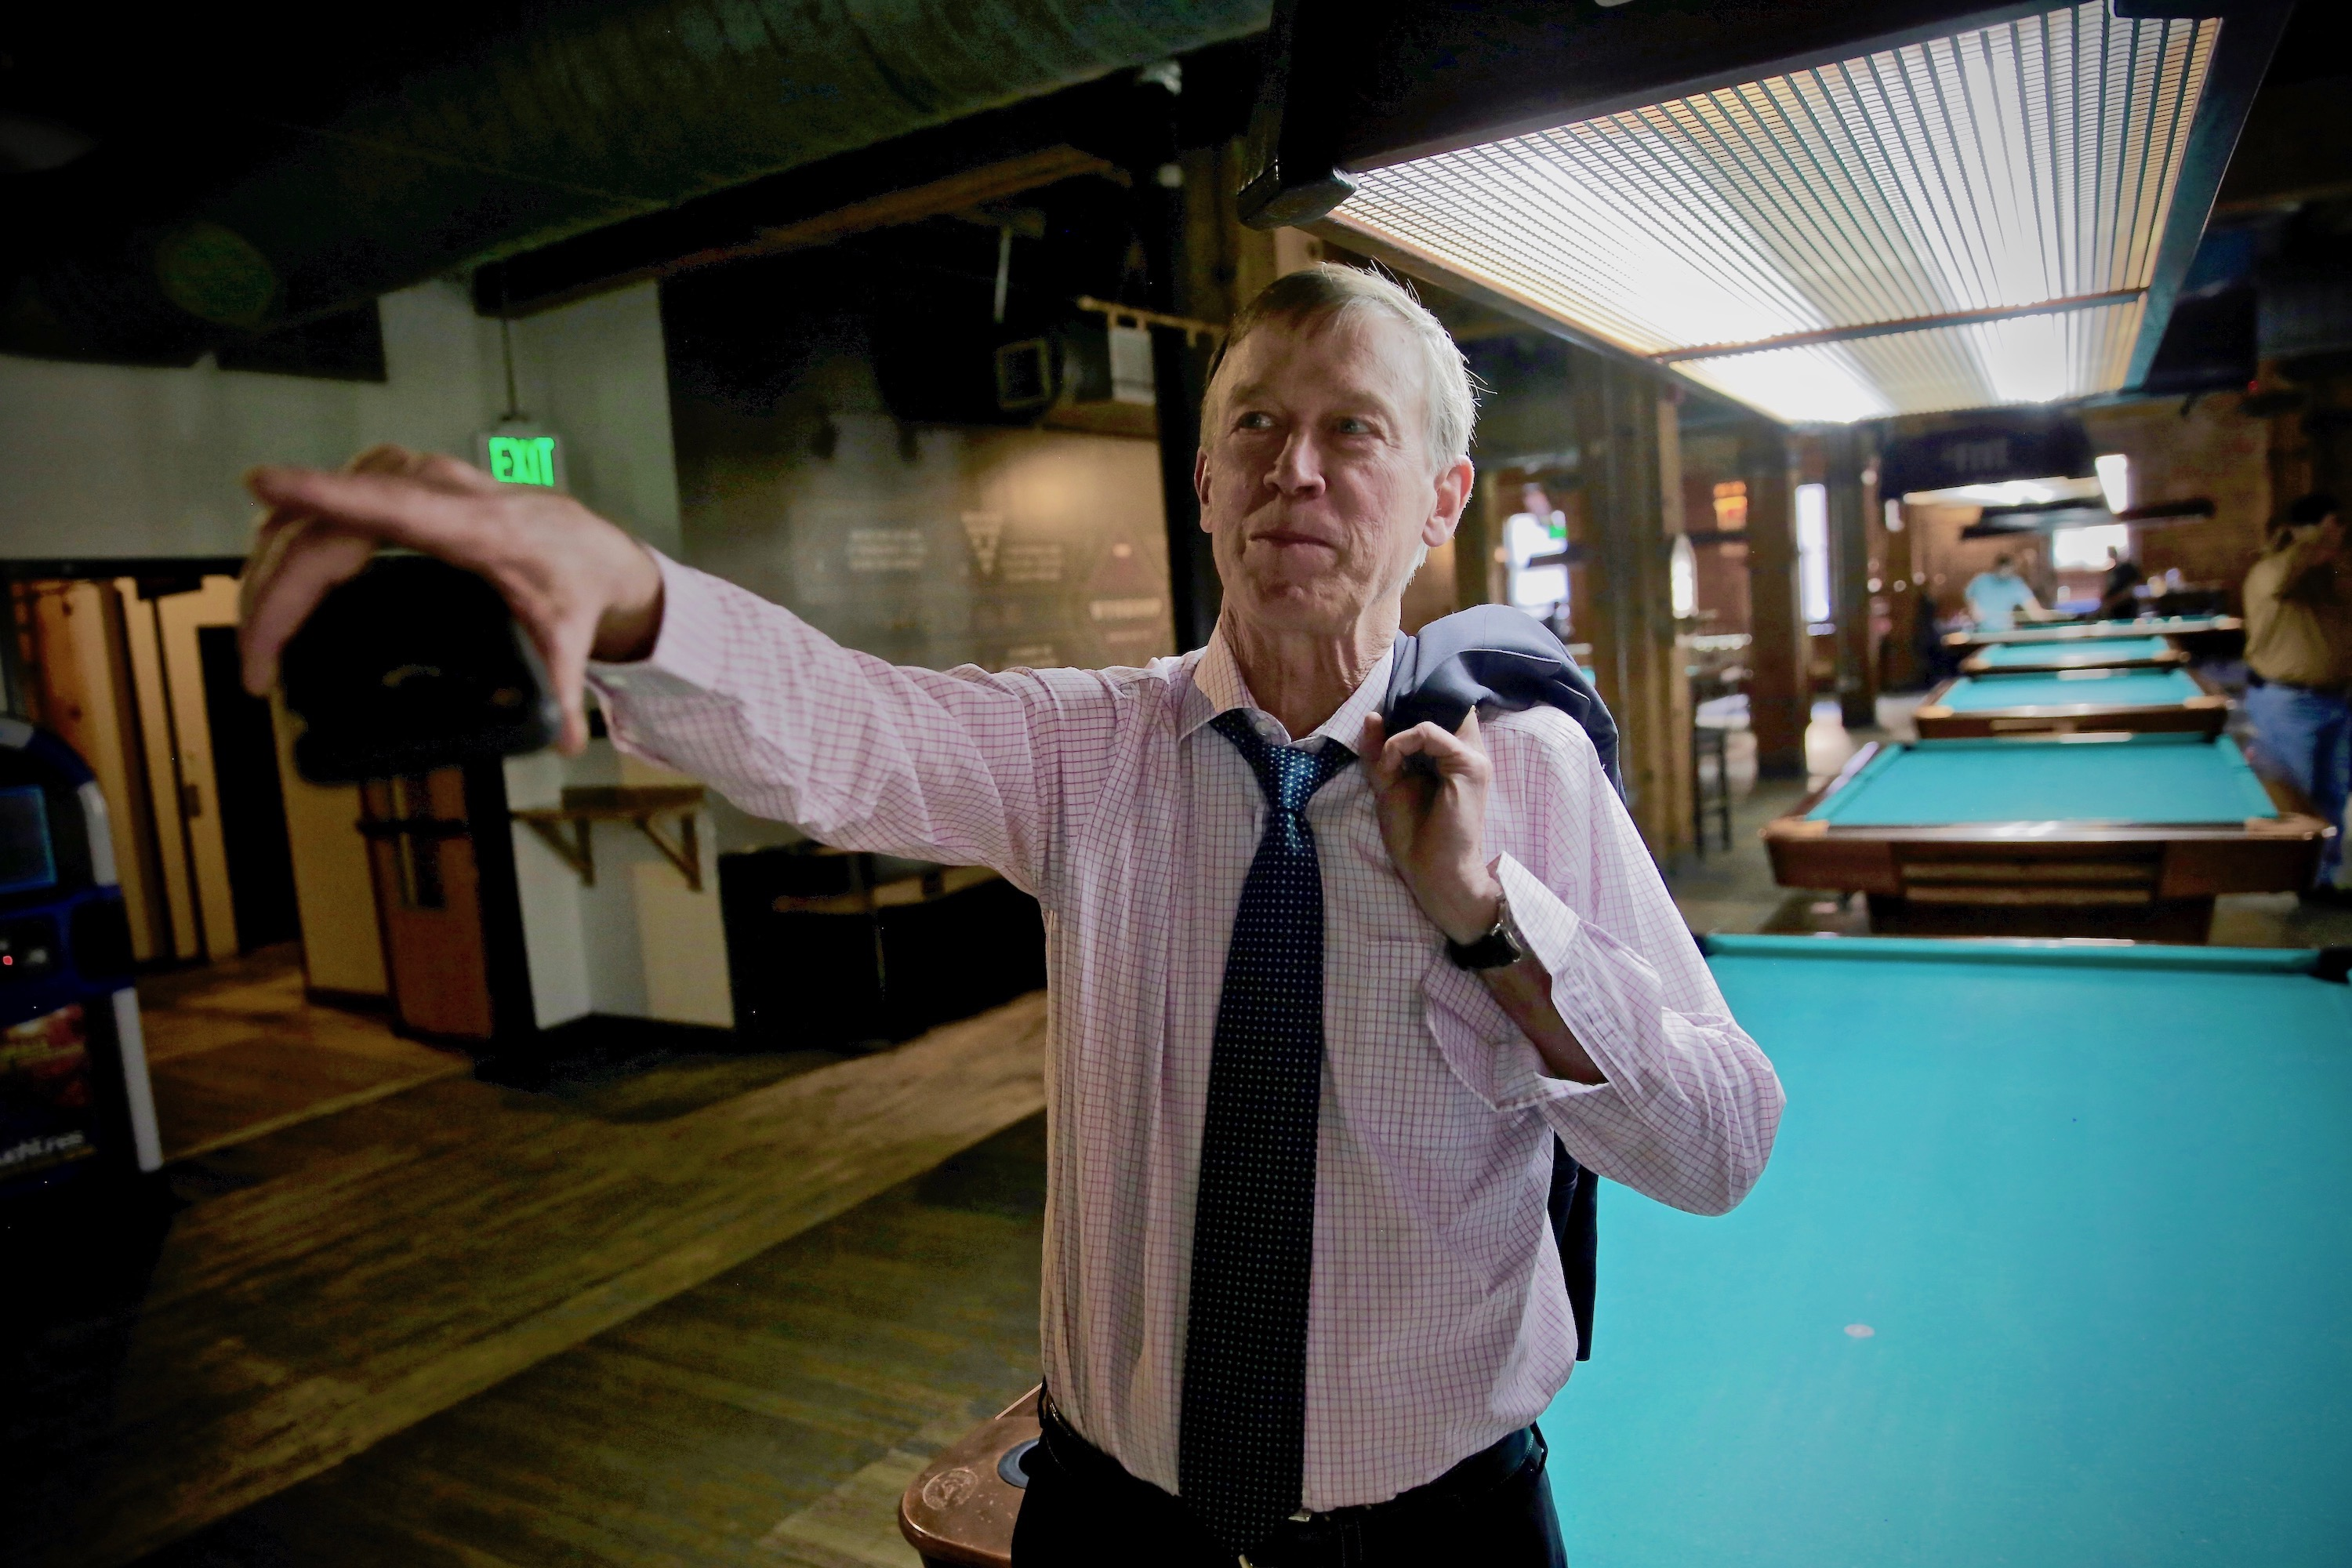 Hickenlooper Talks Legacy And Future Aspirations At The Place Where It All Began